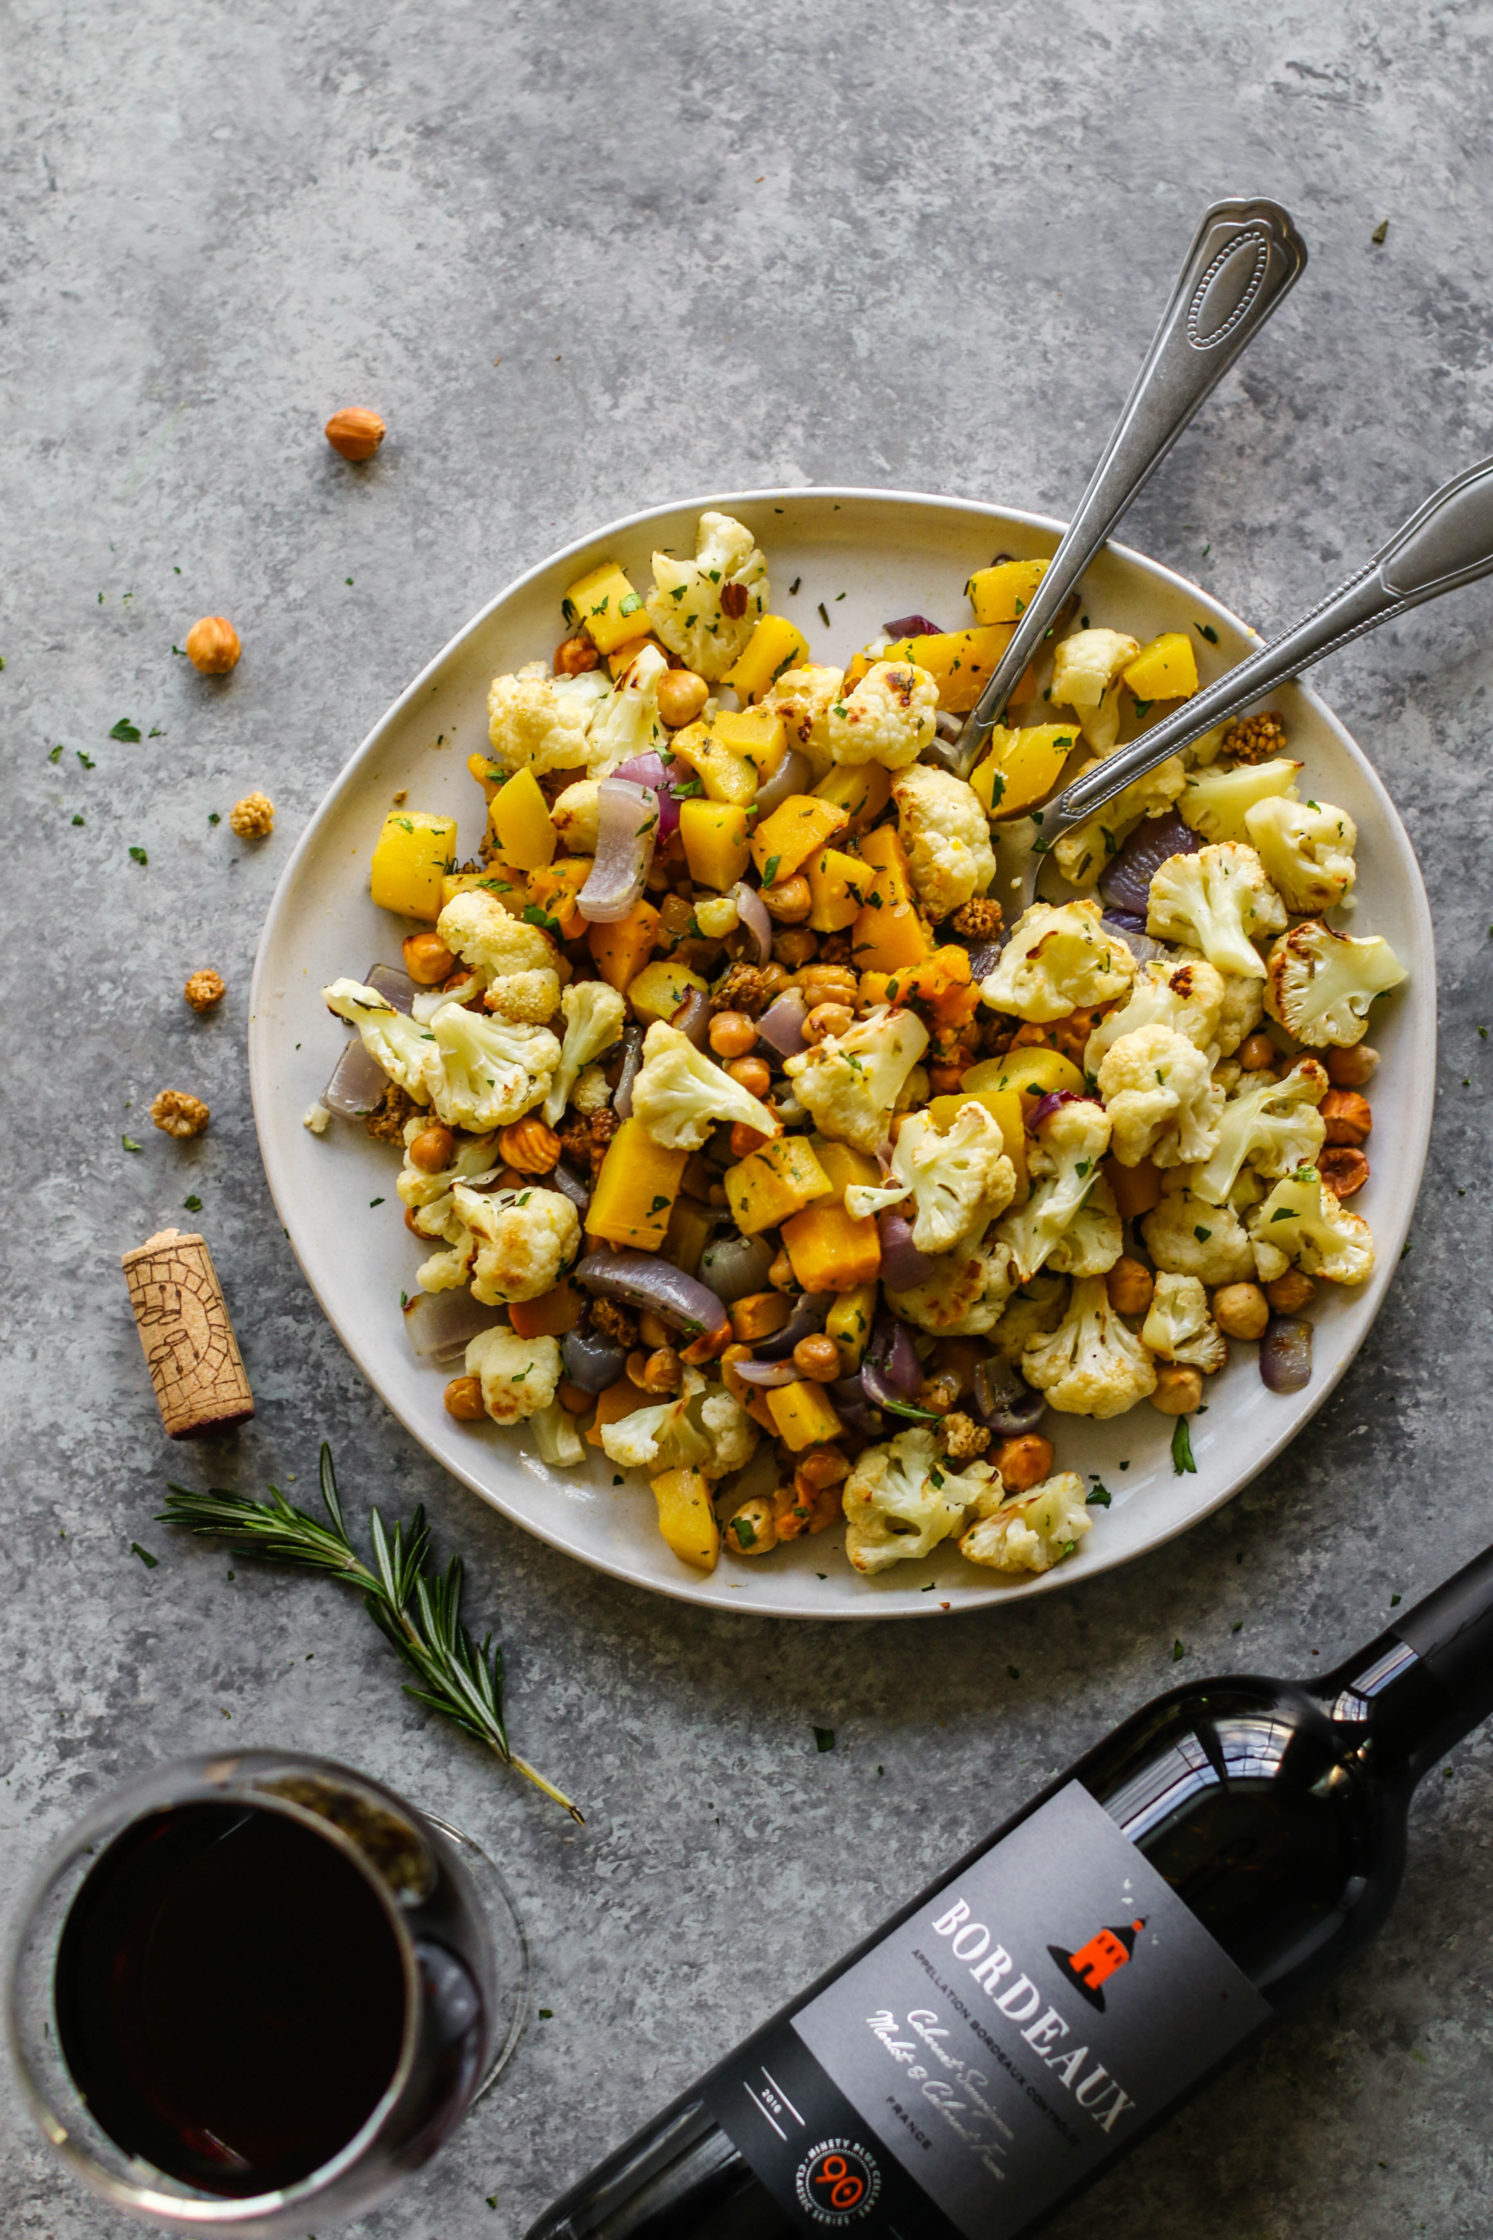 Rosemary Roasted Cauliflower Salad with Toasted Hazelnut & Mulberries